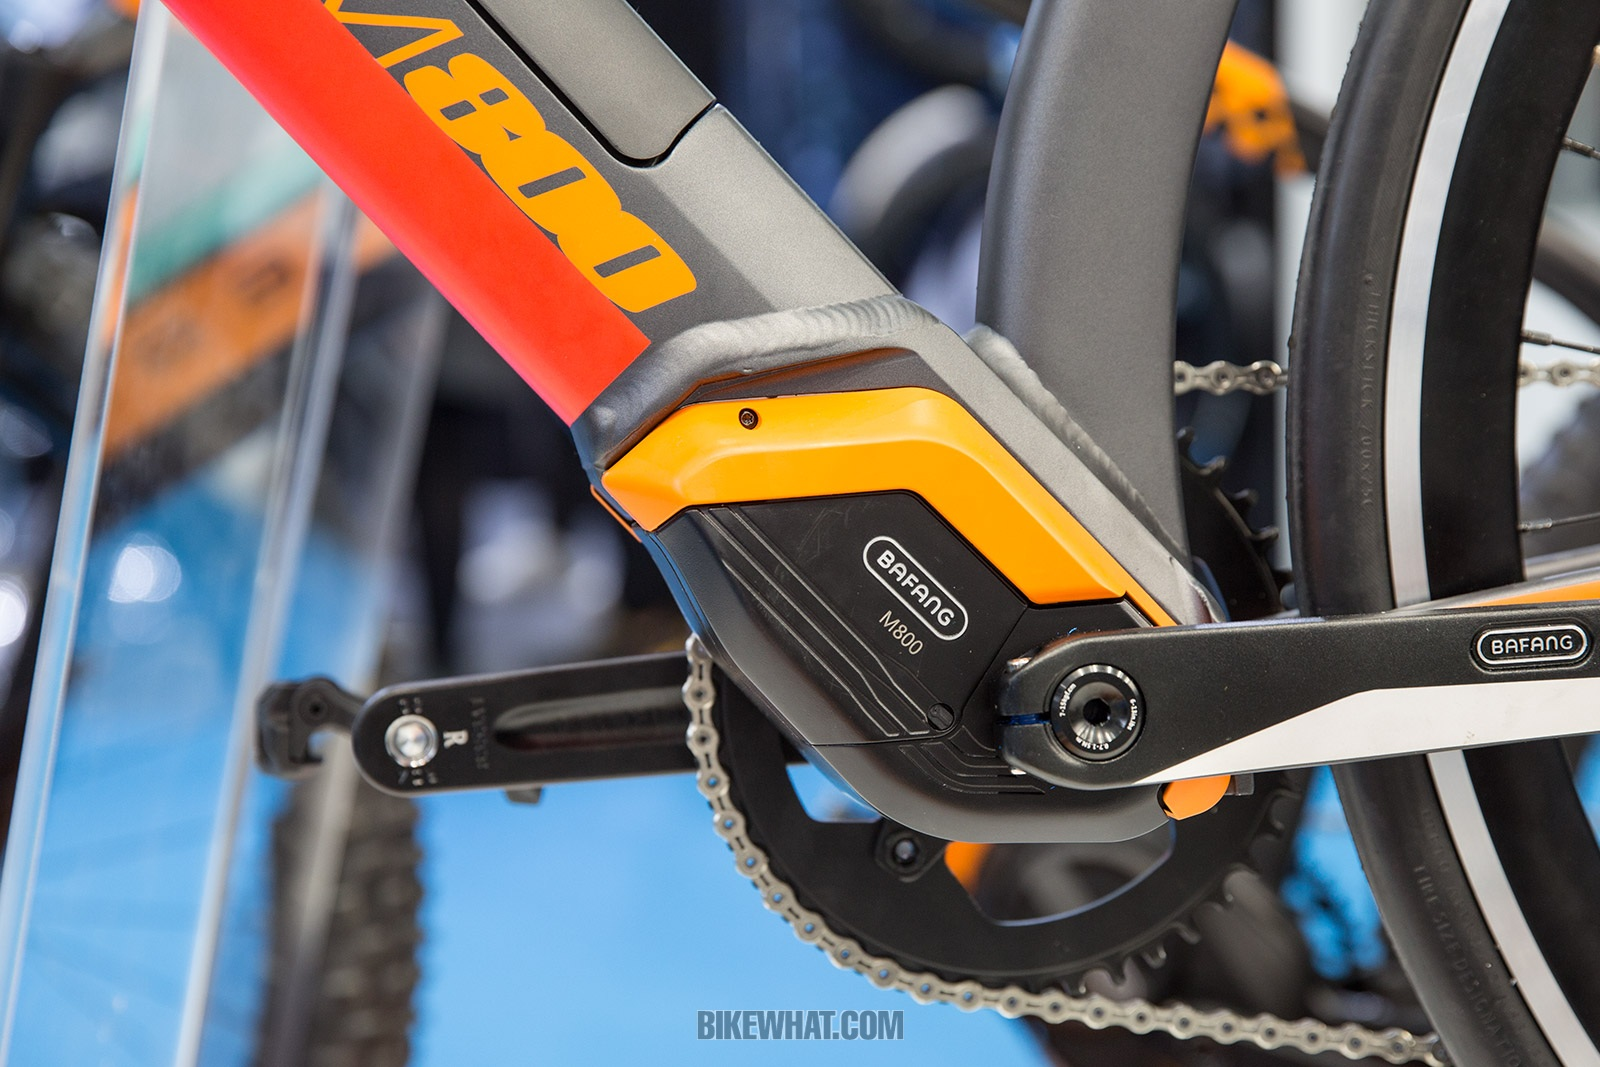 Feature_TaipeiCycle_2019_Bafang_M800_1.jpg